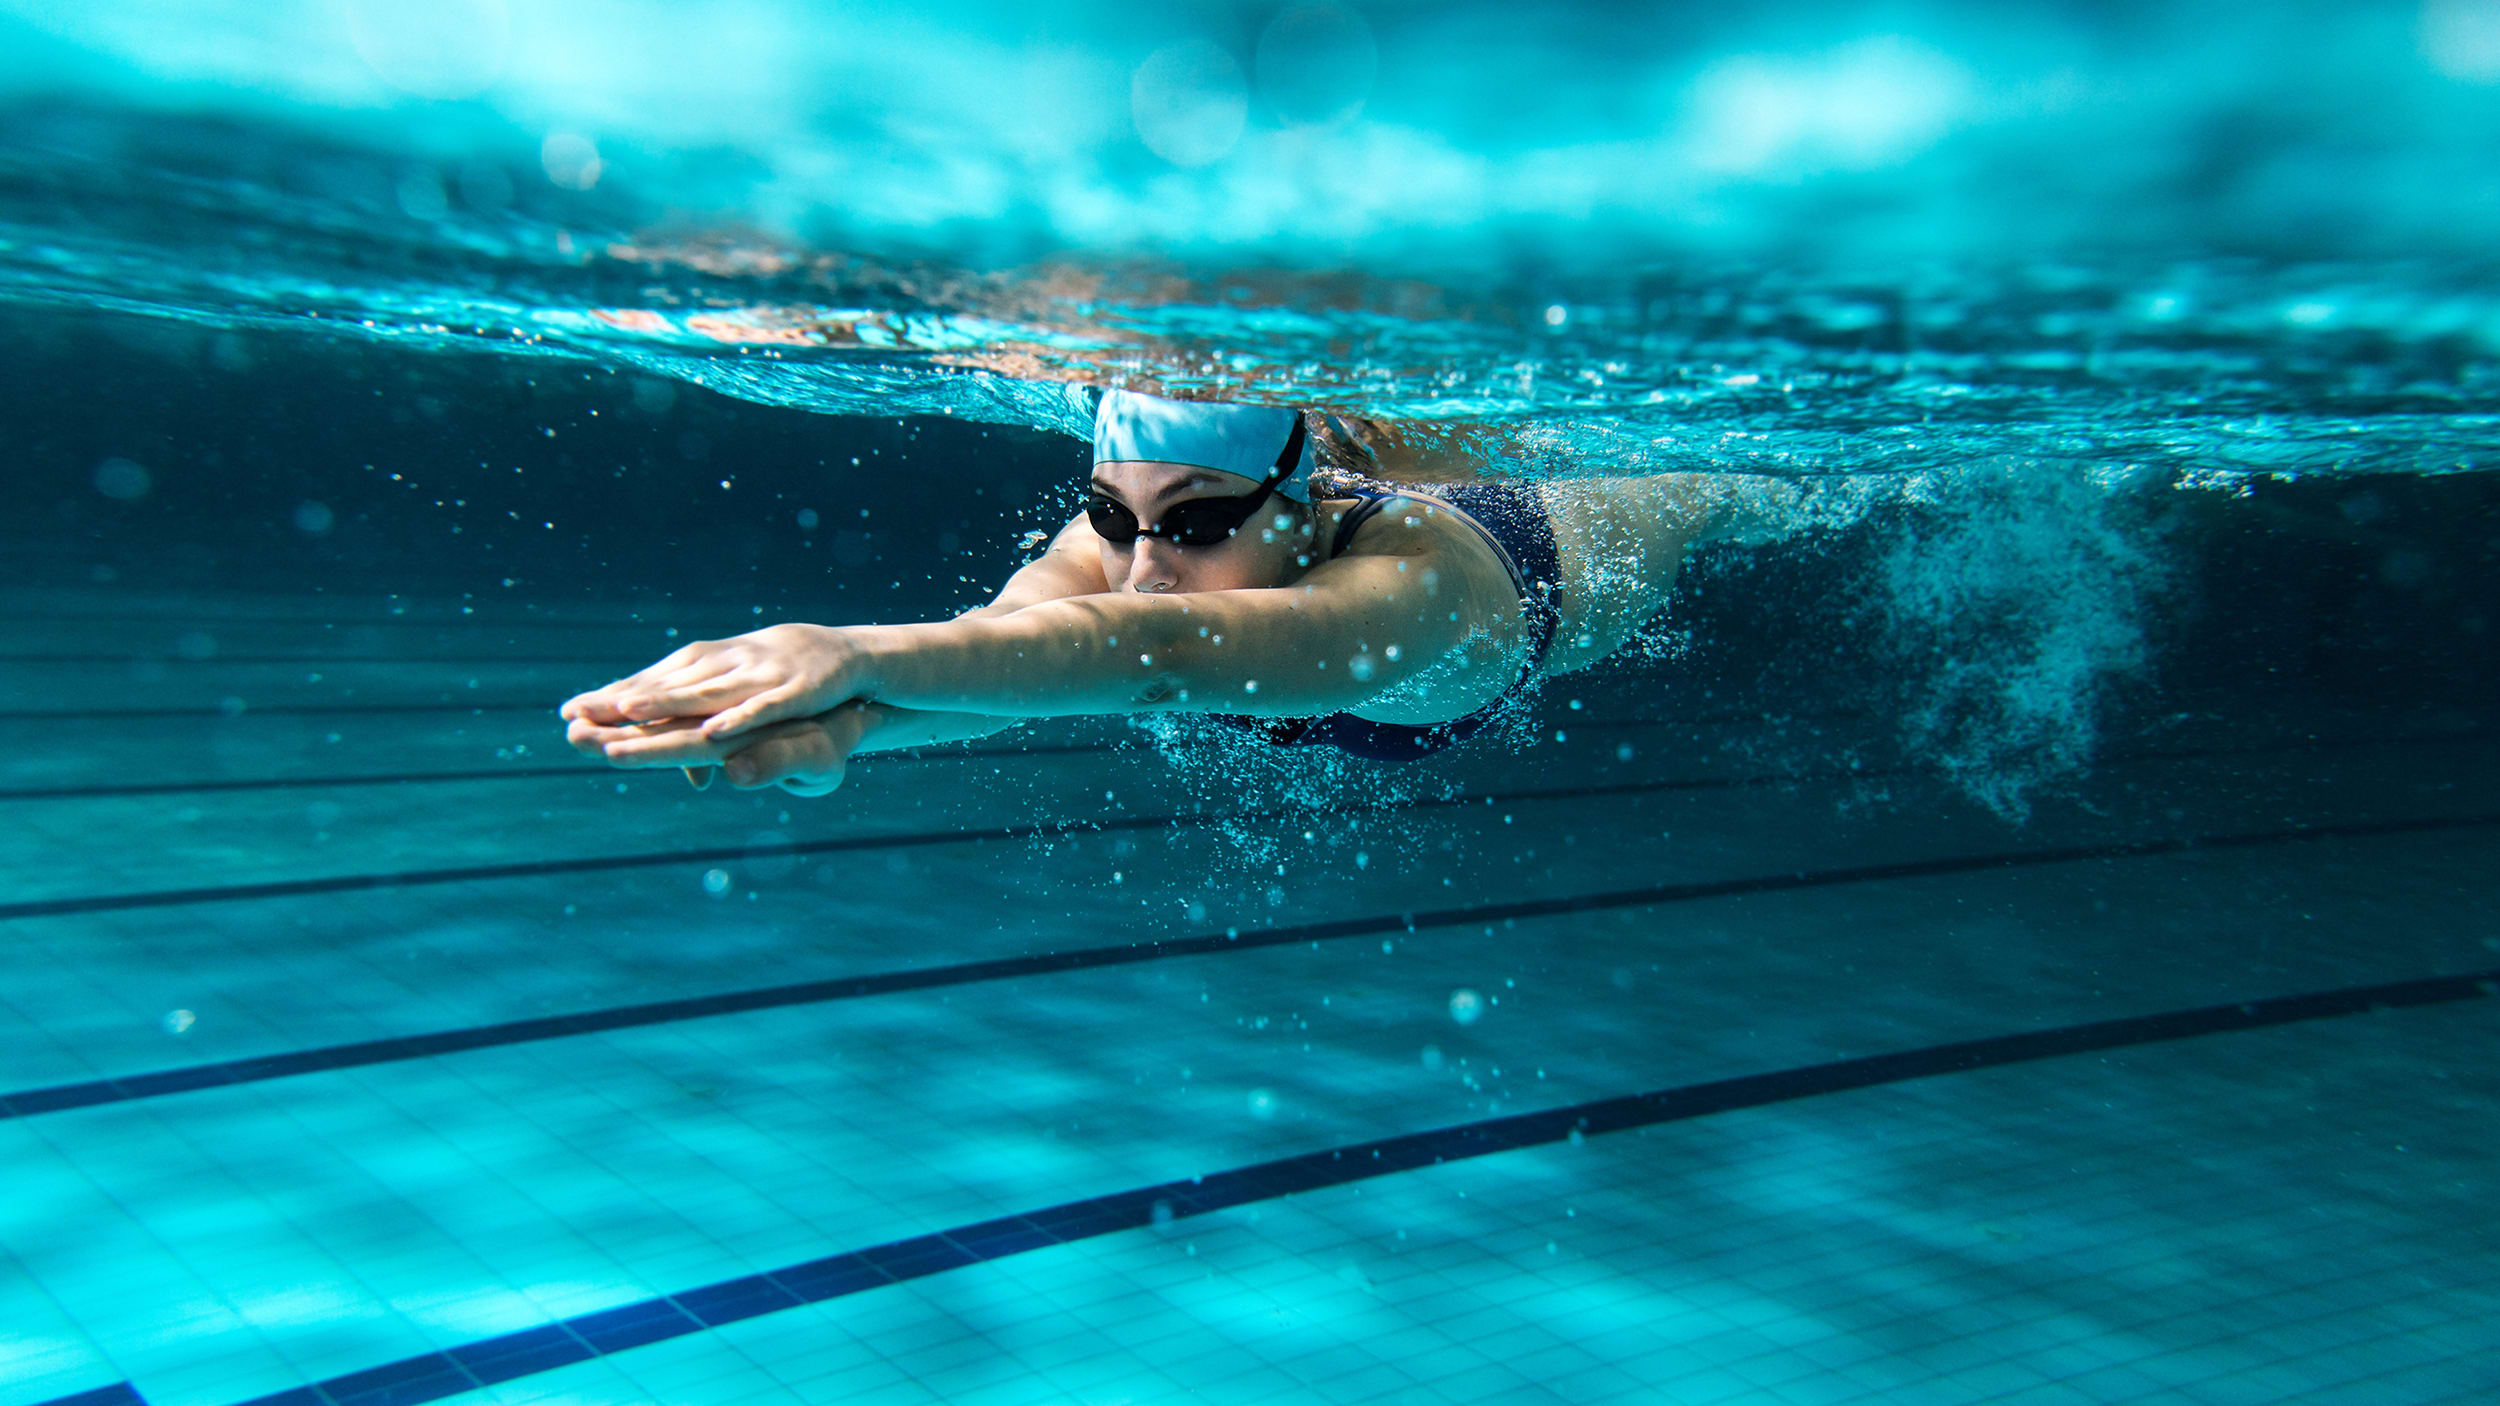 Female athlete swimmer in a pool